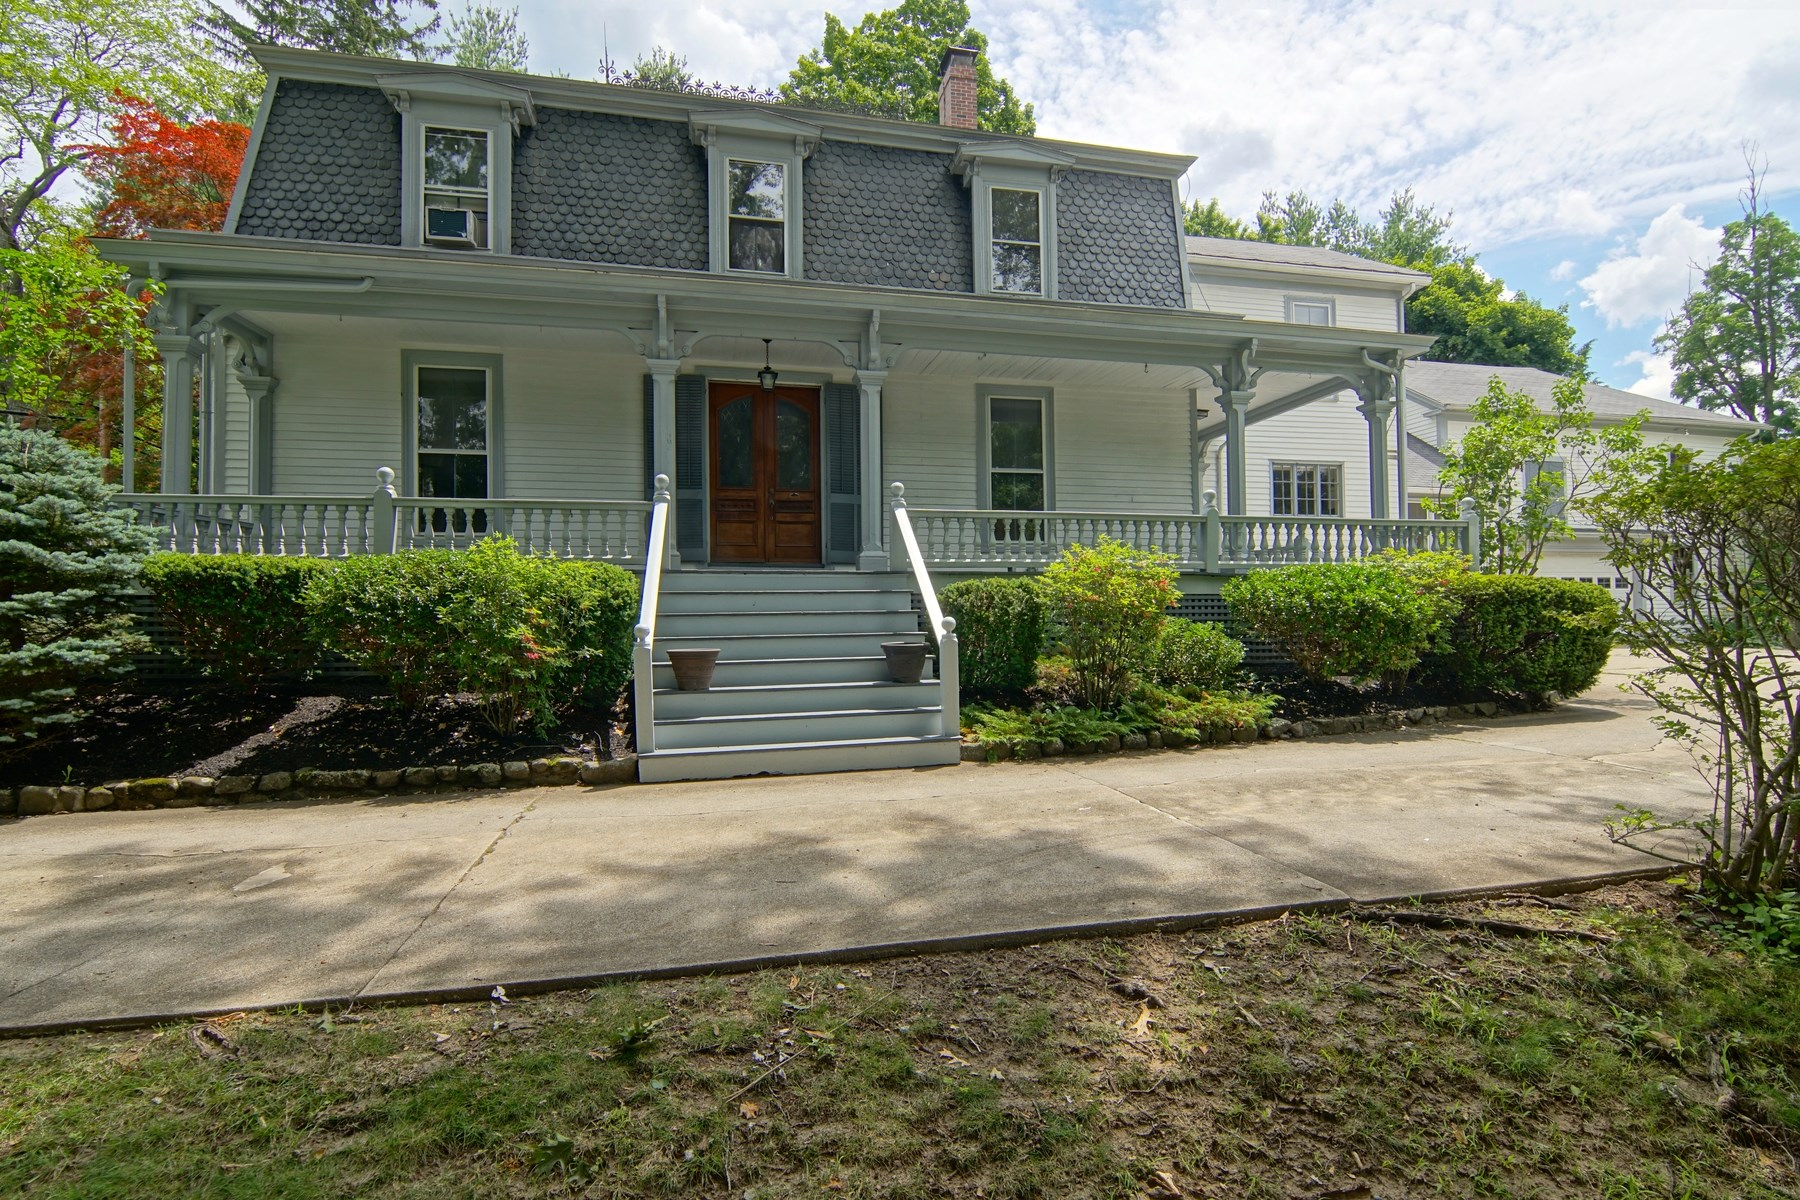 Single Family Home for Sale at Gracious In-Town Victorian 129 High Street, Exeter, New Hampshire, 03833 United States